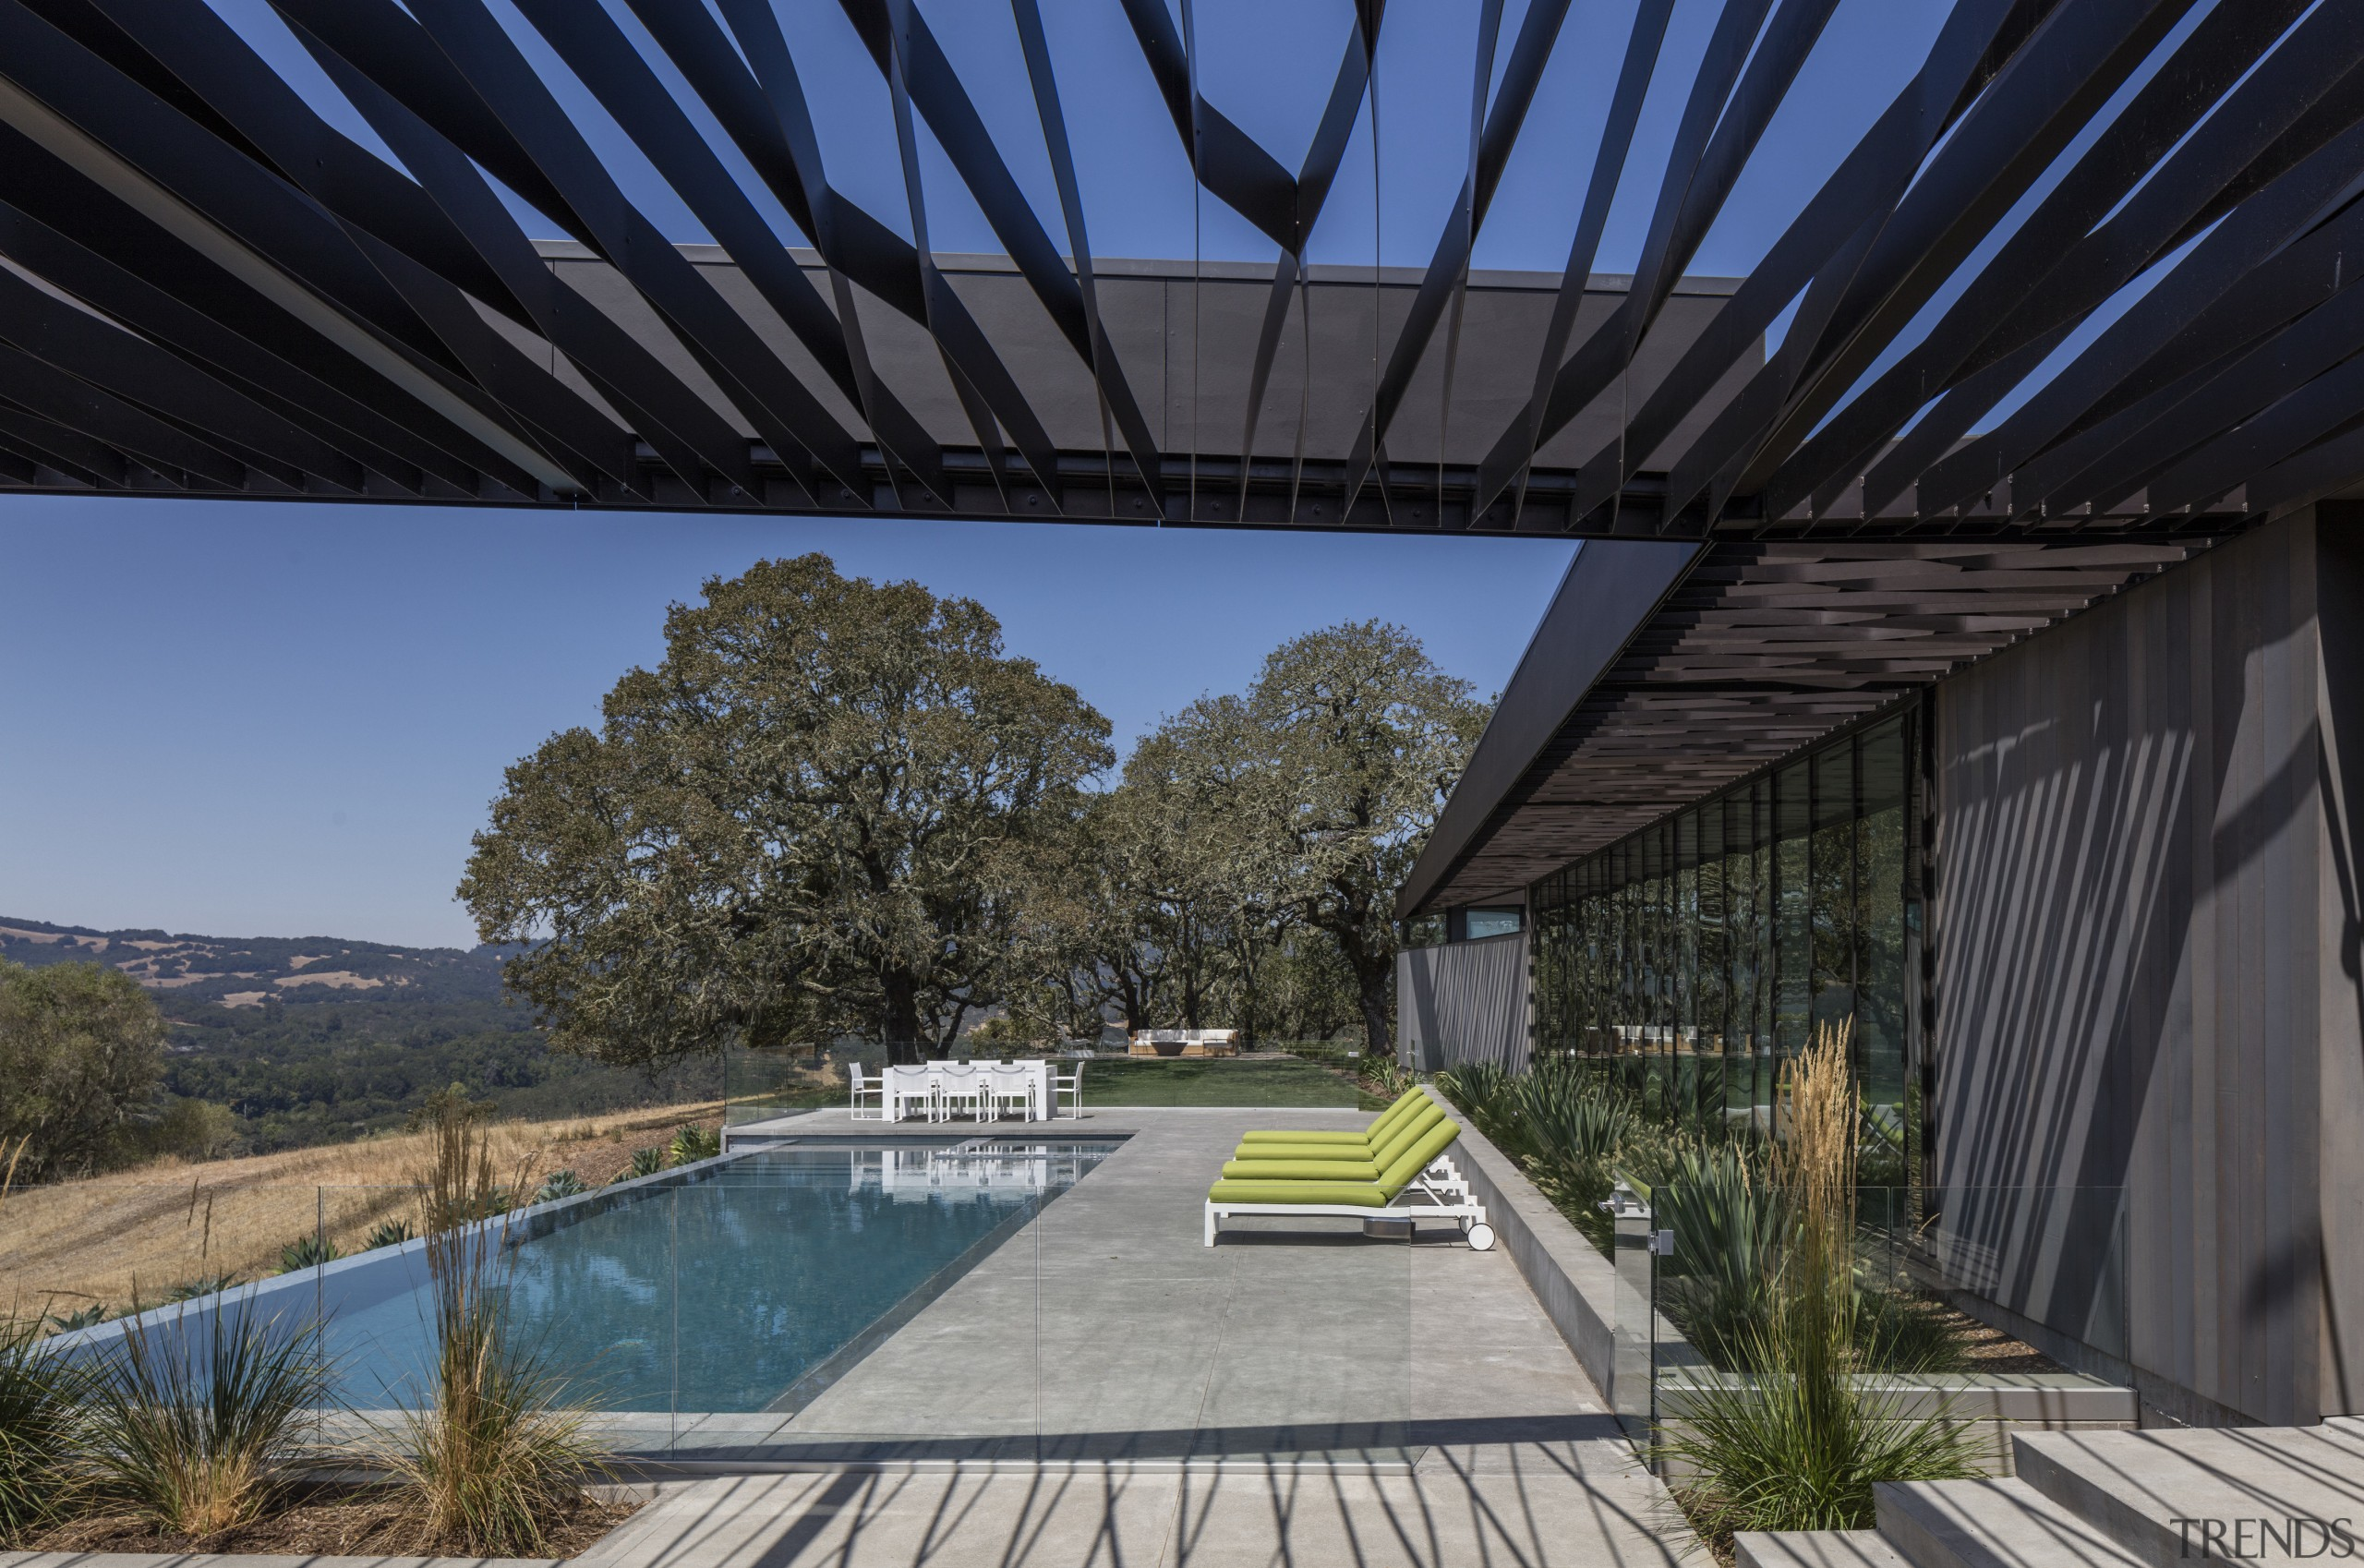 While the trellis running alongside the two wings architecture, estate, home, house, landscape, outdoor structure, plant, property, real estate, roof, sky, black